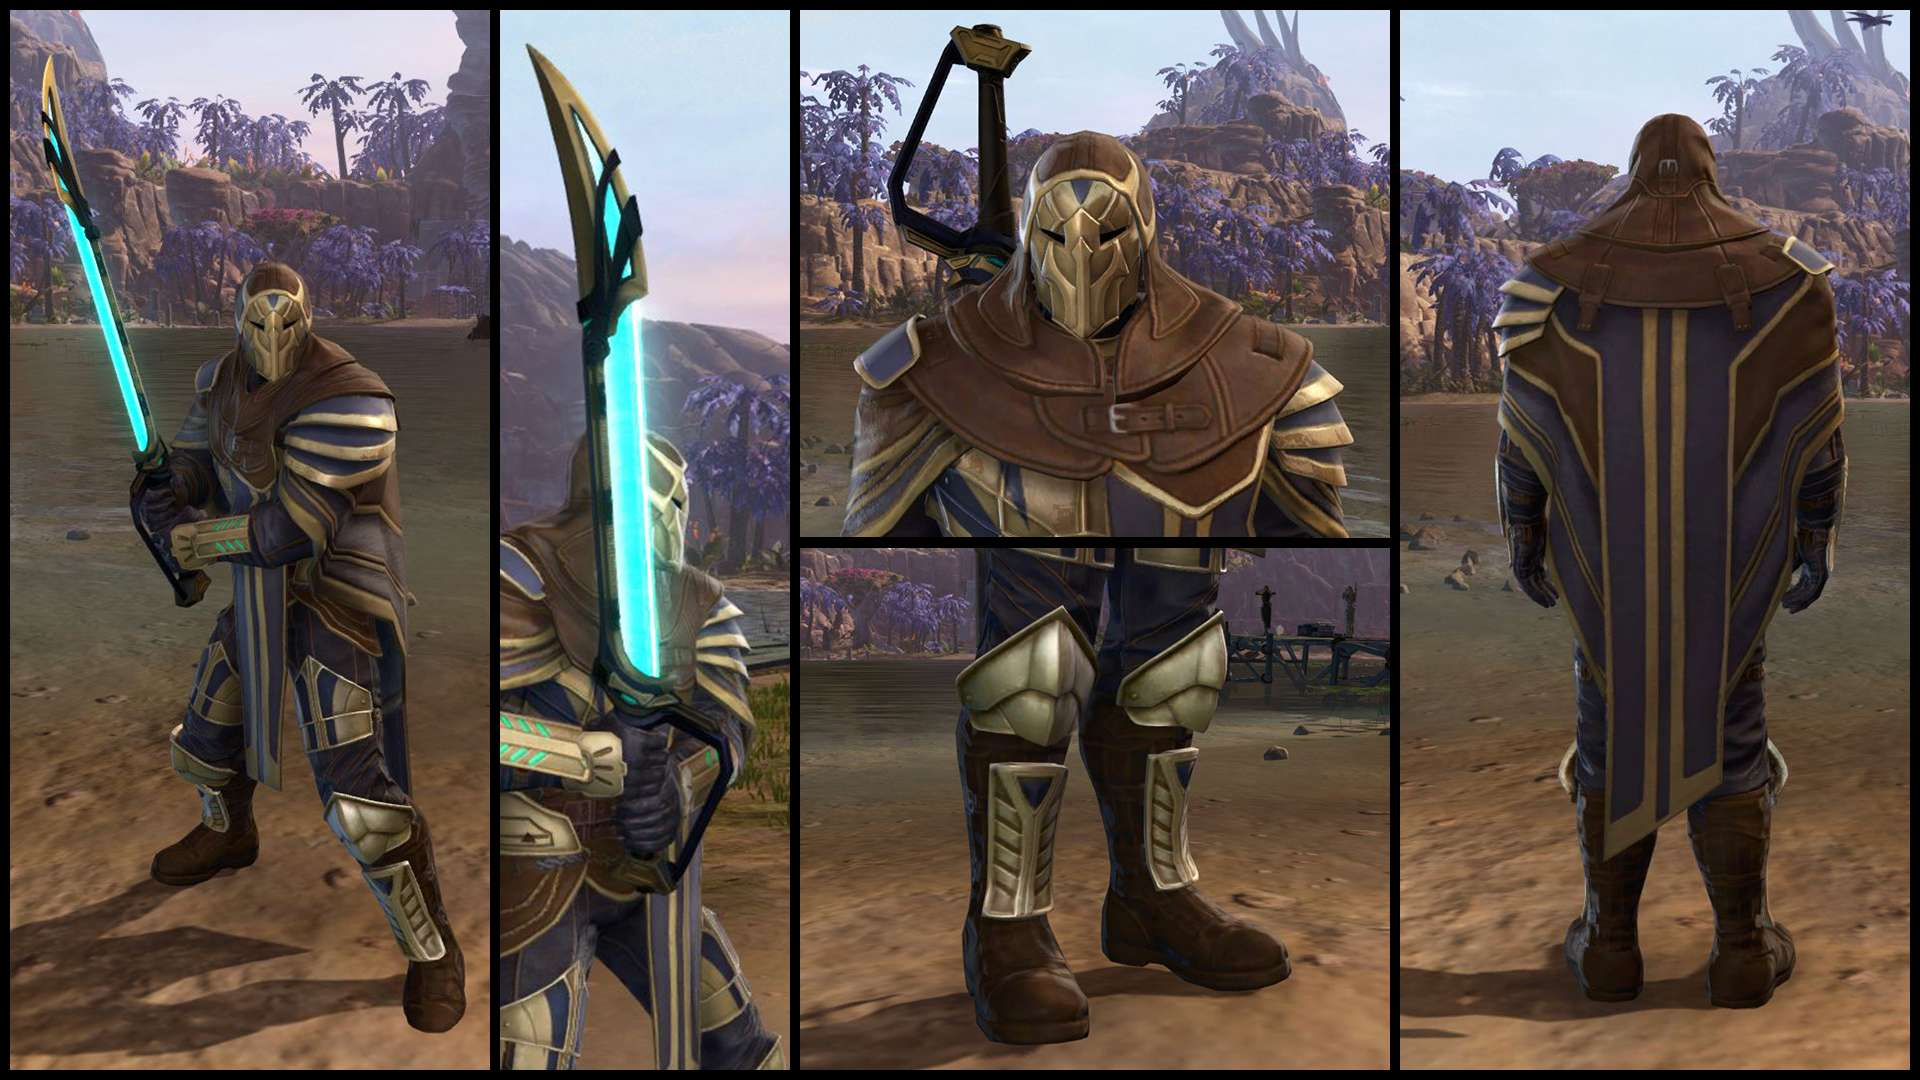 New Cartel Market Items In Star Wars The Old Republic Fits In With The New Expansion